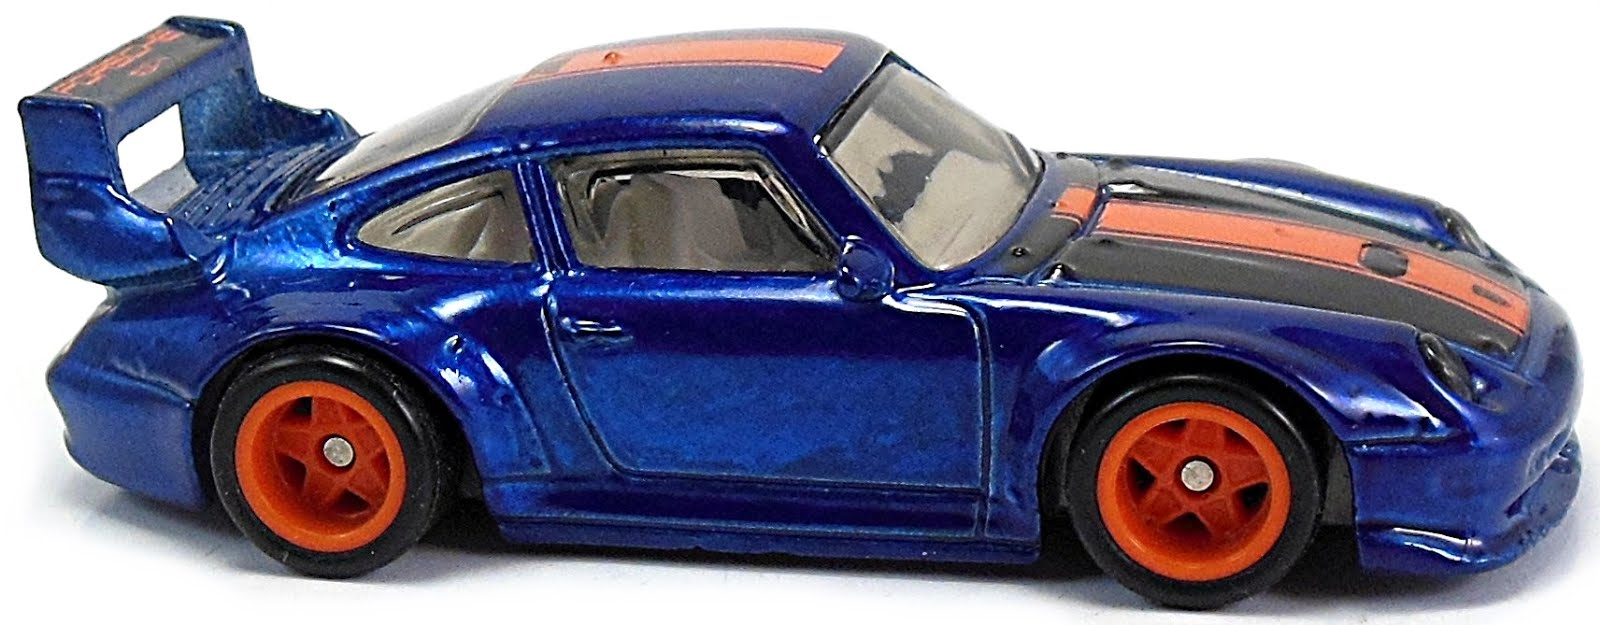 hot wheels porsche 993 gt2 super treasure hunts